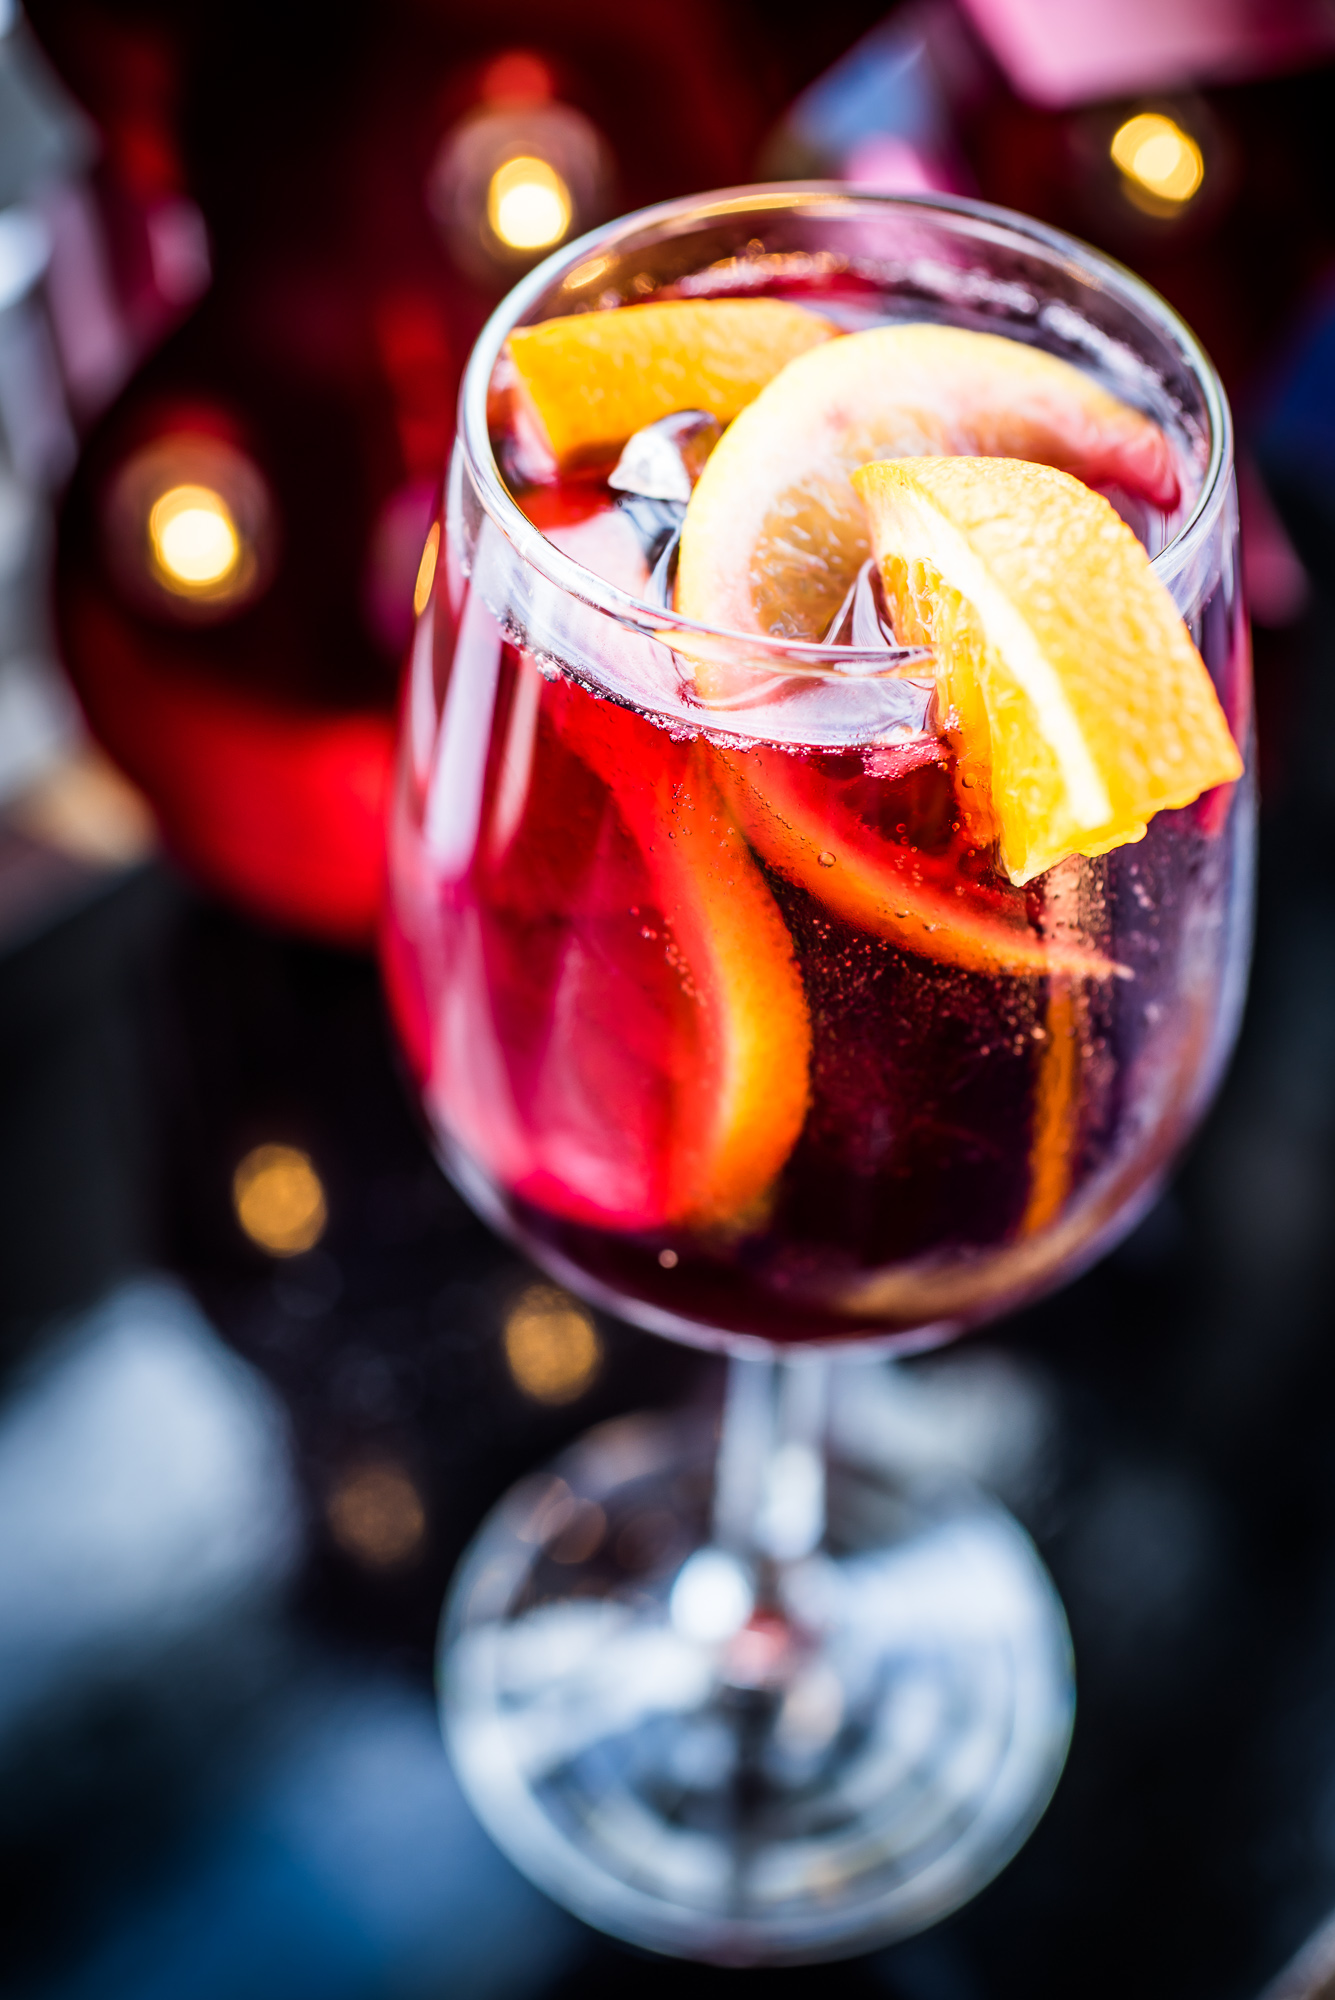 A glass of a red drink topped with orange slices